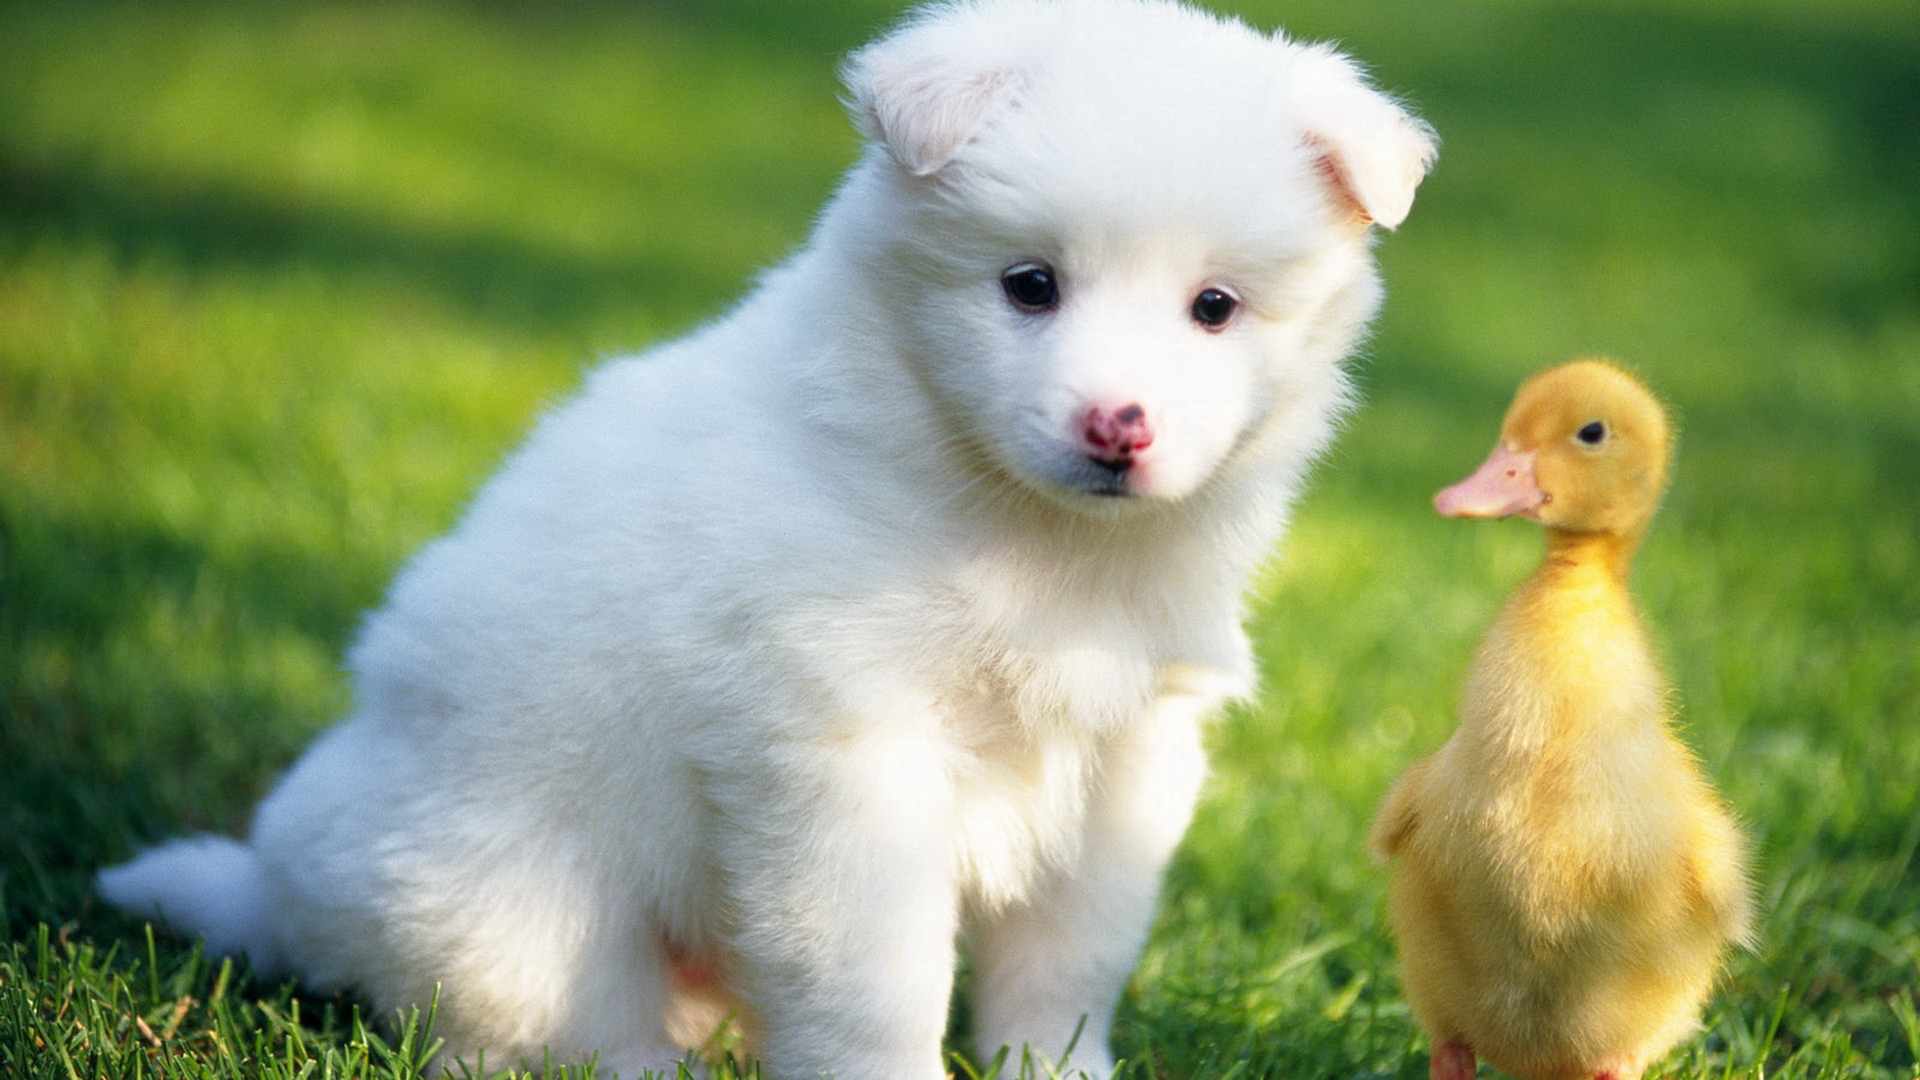 pets wallpapers 1920x1080